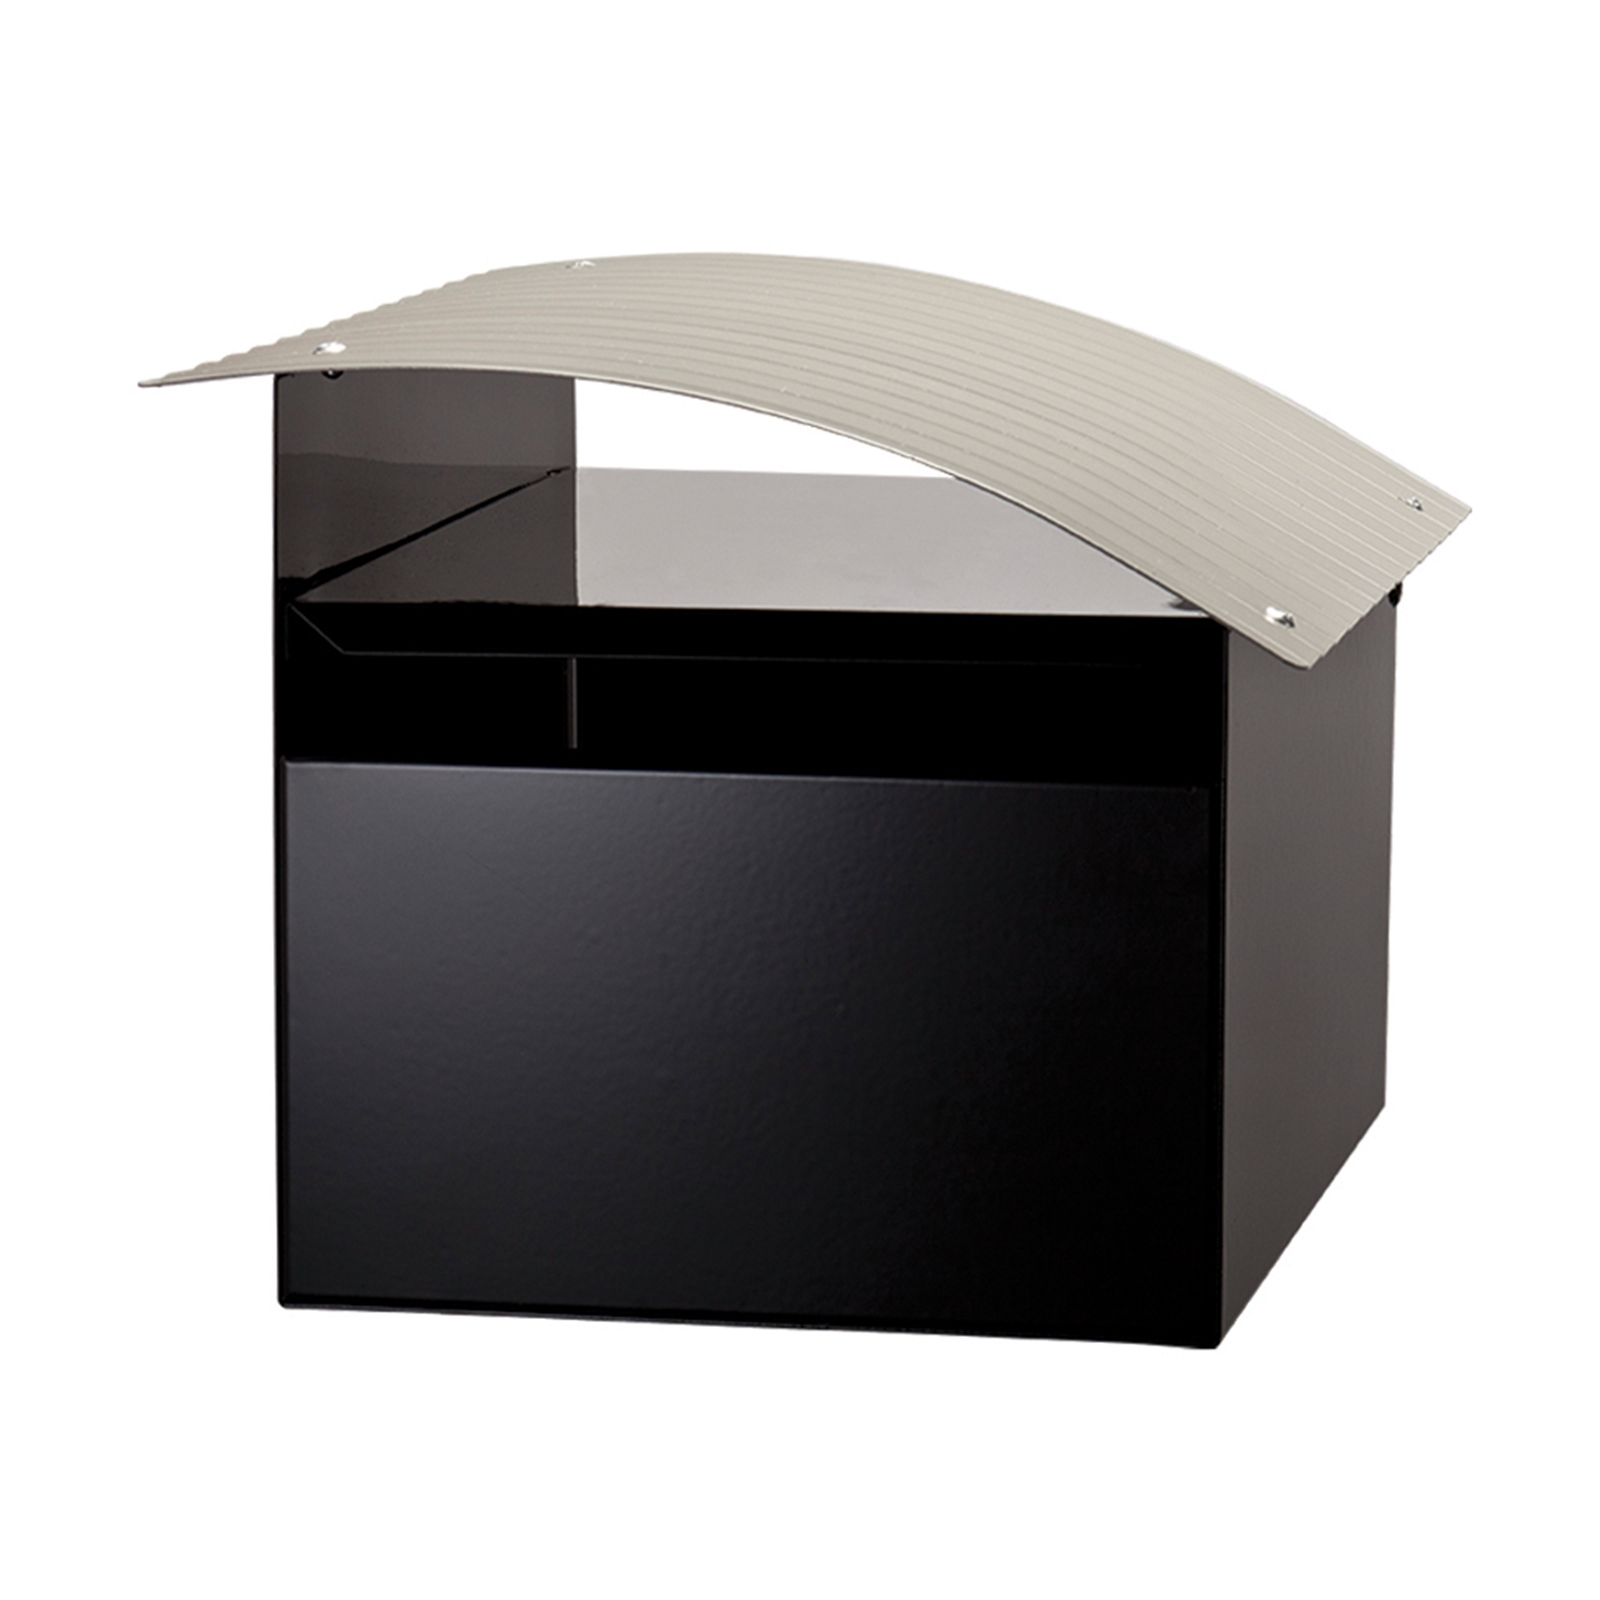 Sandleford 210 x 180 x 290mm Black And Silver Ripple Galvanised Letterbox